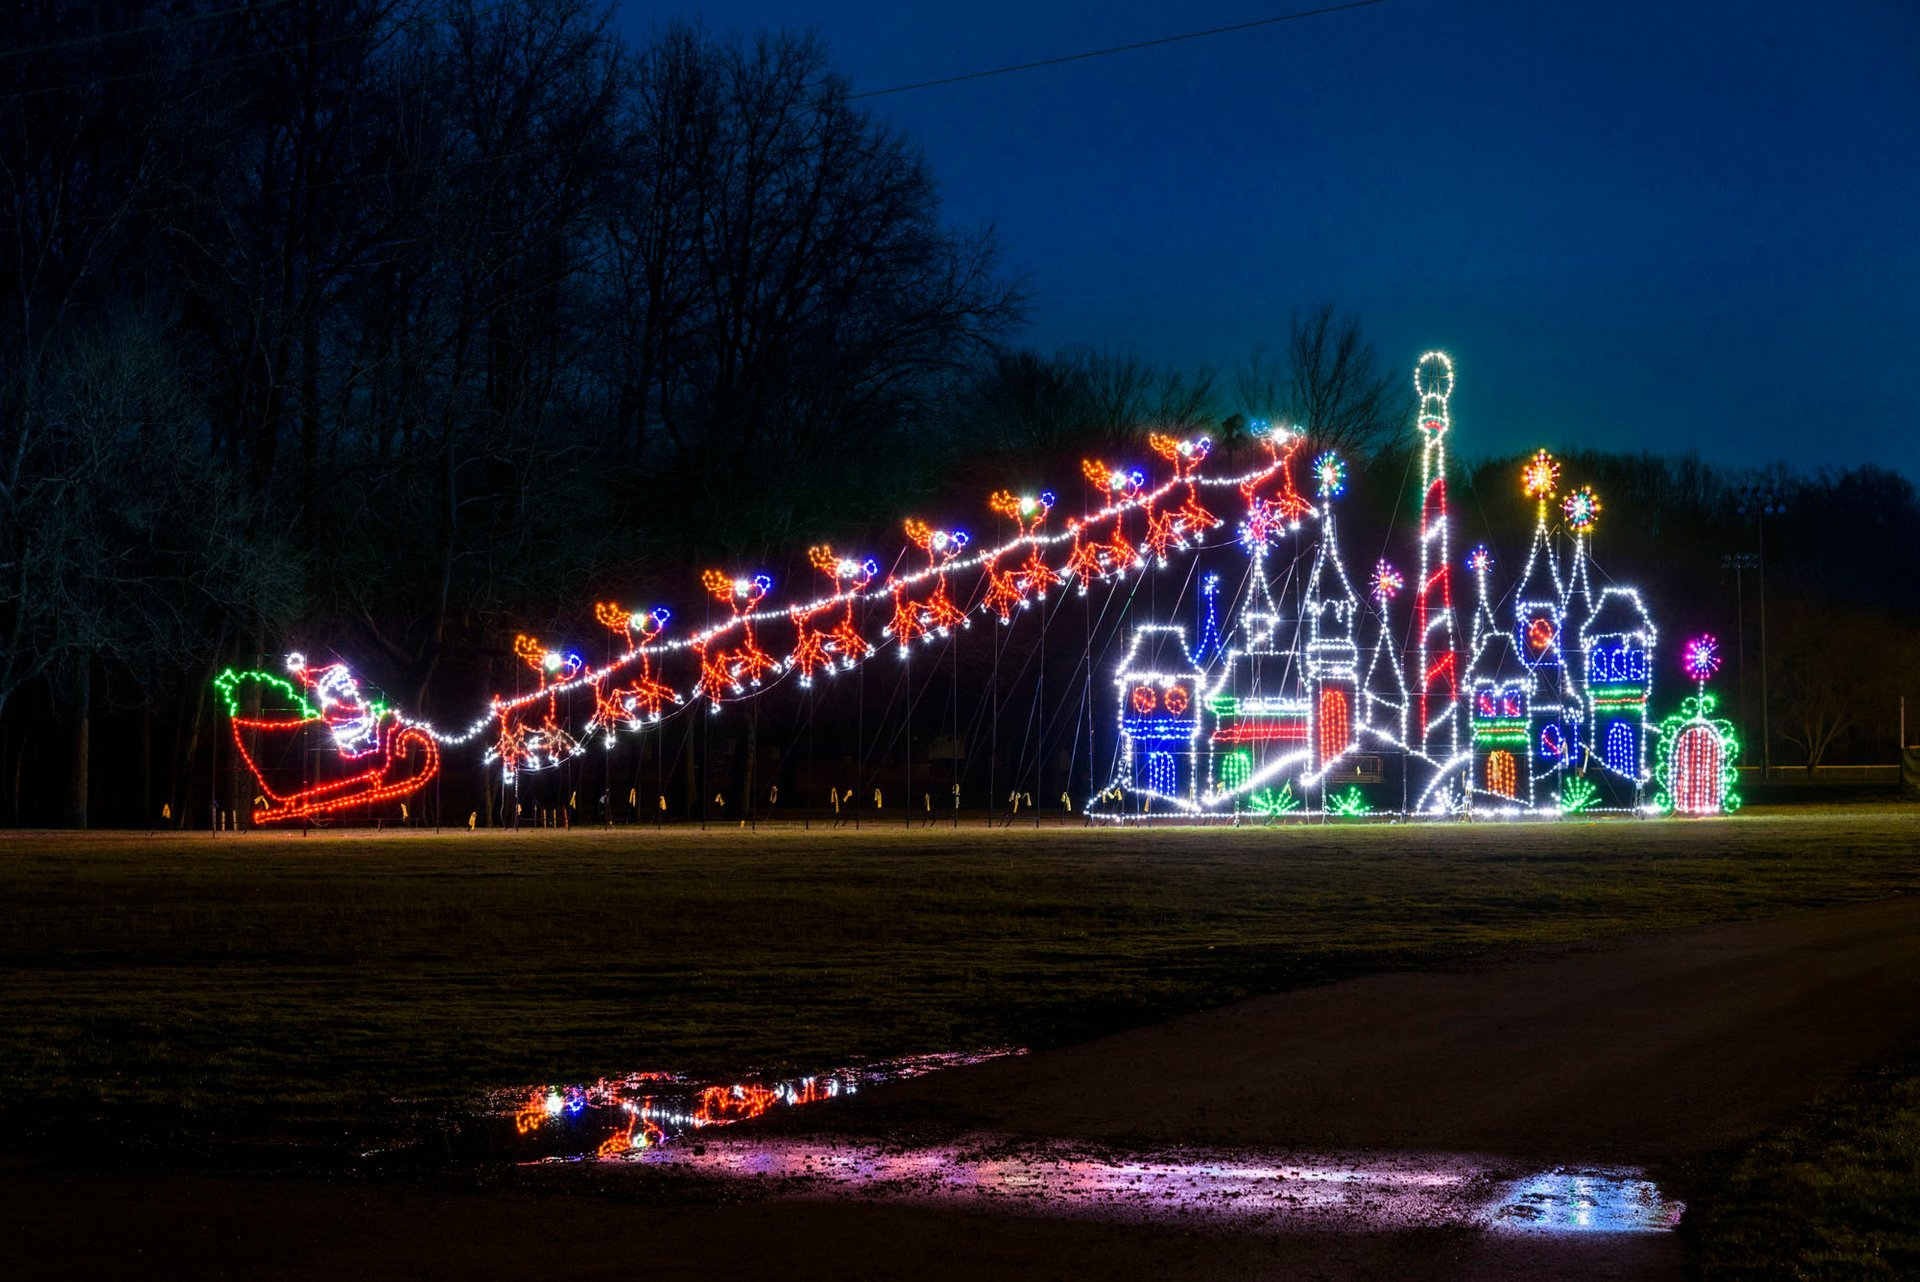 Winter Festival of Lights at Watkins Park  in Maryland 2020 - Best Time